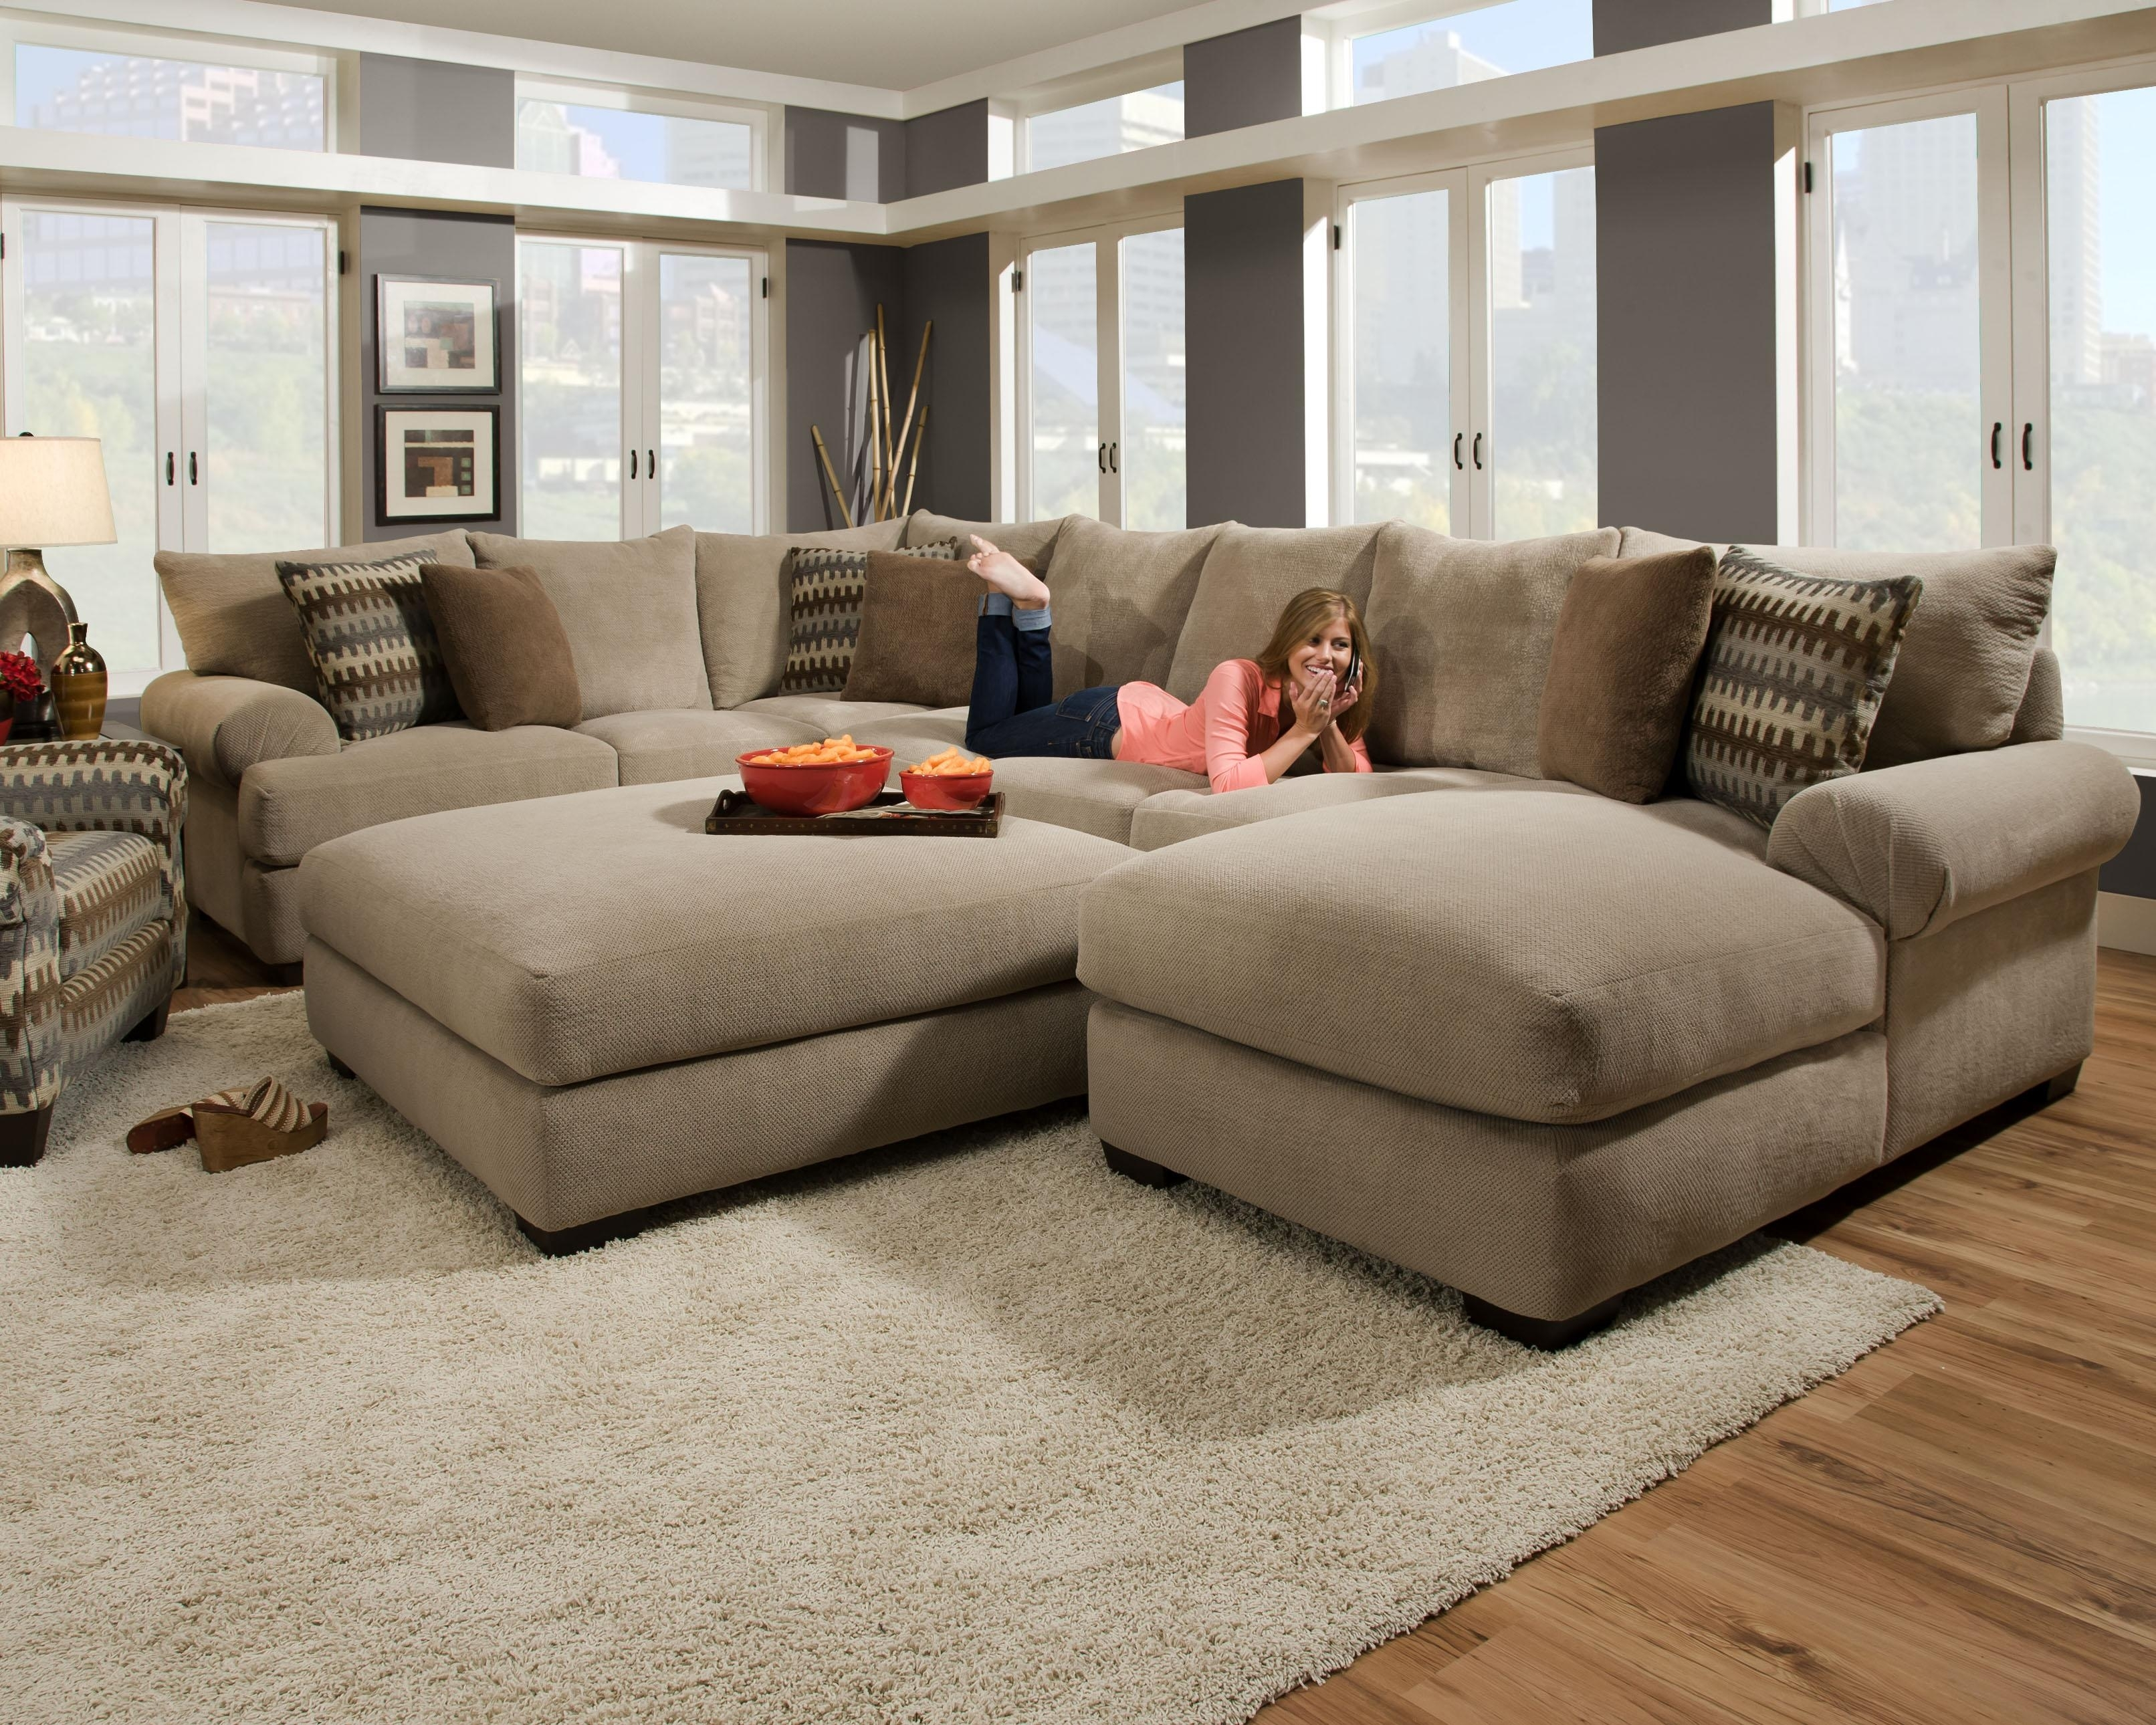 Corinthian 61A0 Sectional Sofa With Right Side Chaise | Furniture pertaining to Wide Sectional Sofas (Image 4 of 10)